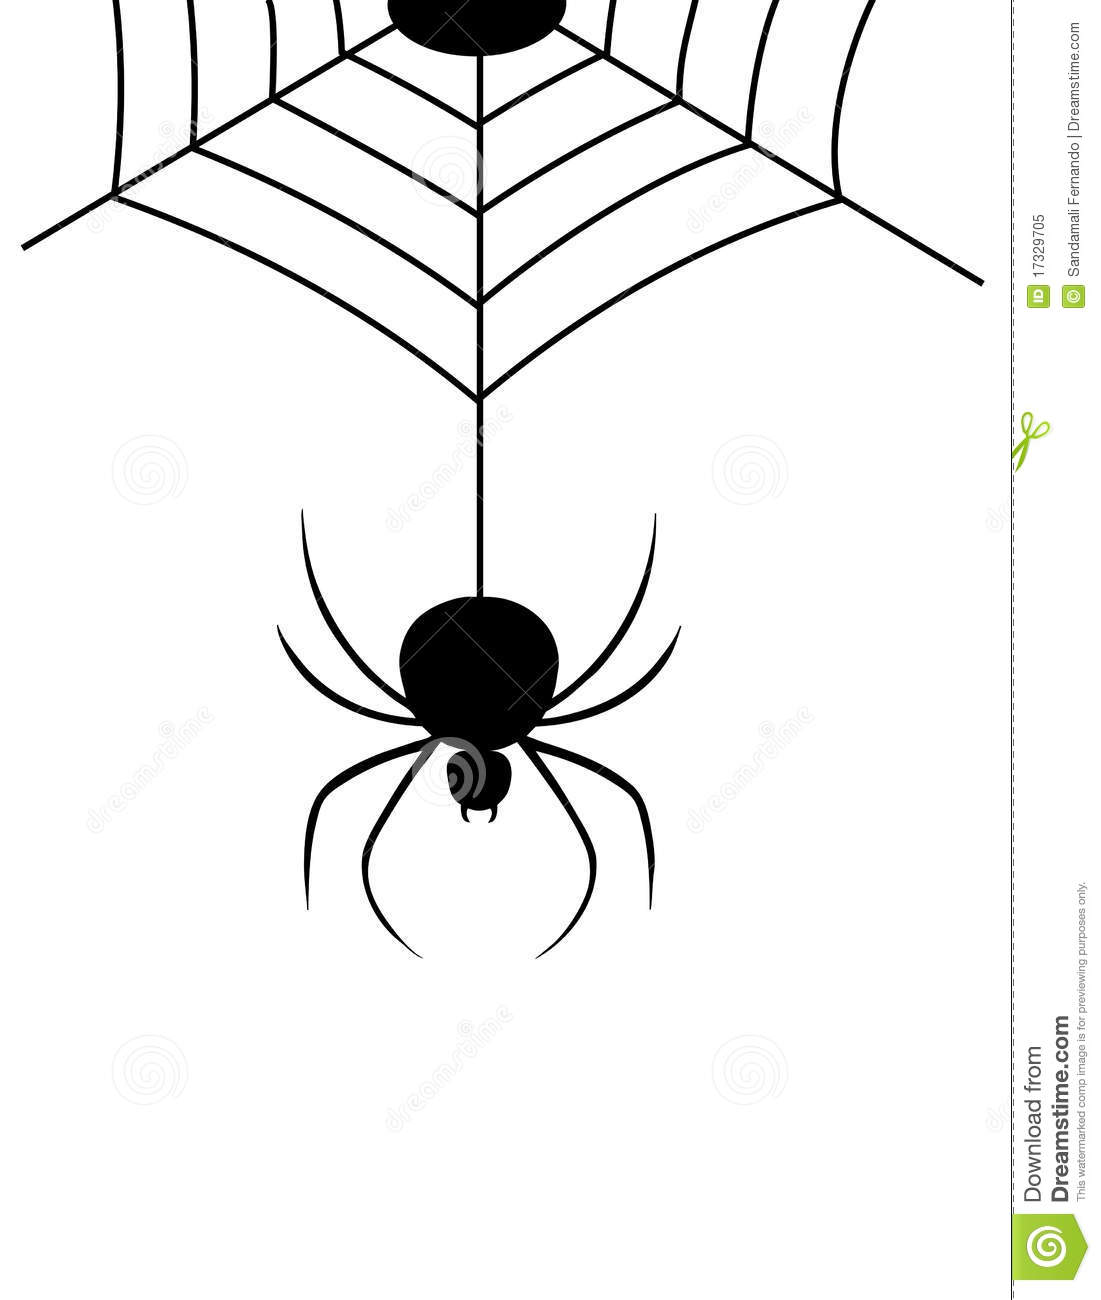 Spider Webs Royalty Free Stock Photo